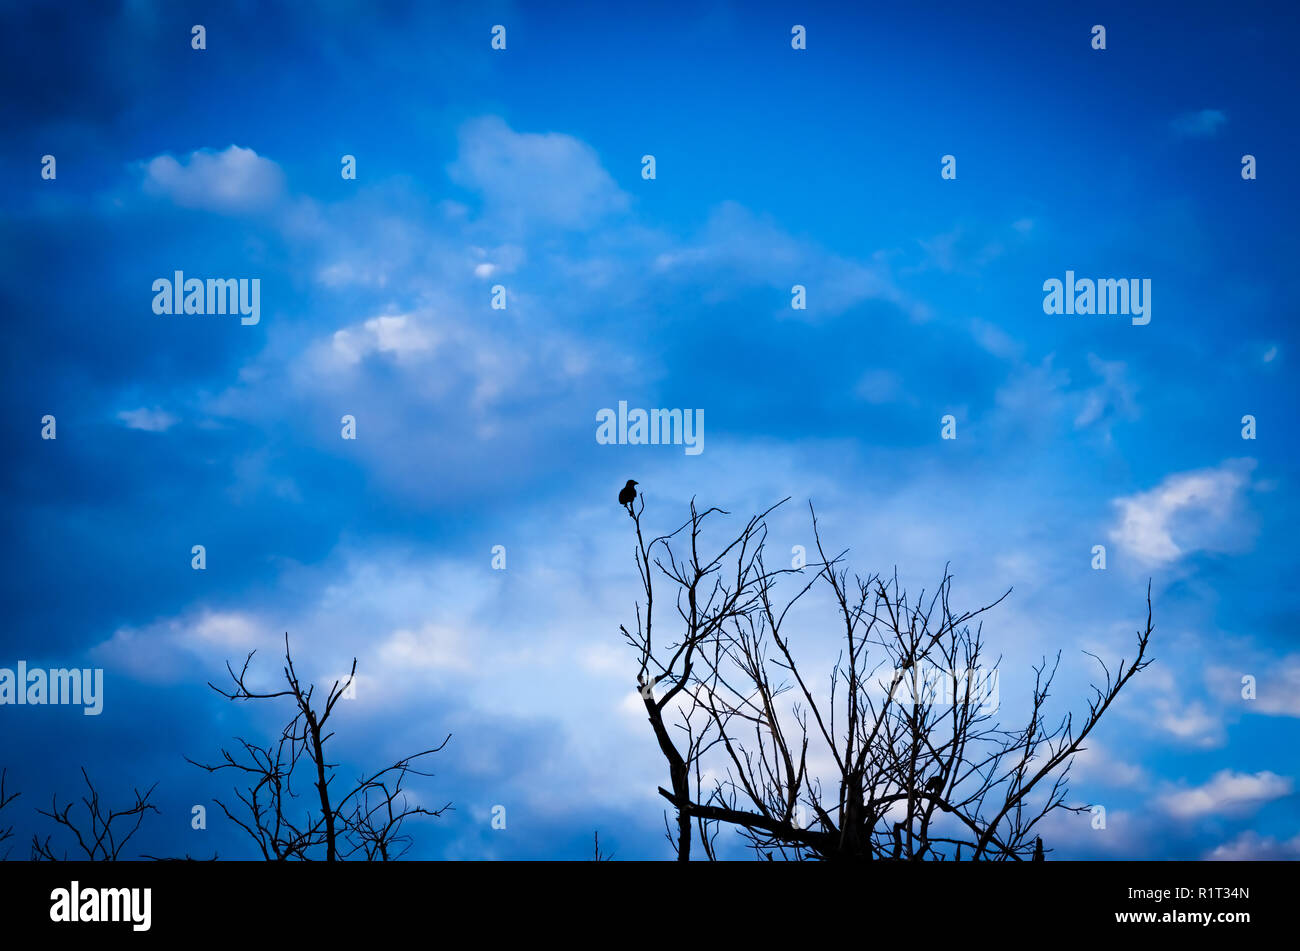 Silhouette of crow and barren tree. Blue sky with clouds in the background. - Stock Image